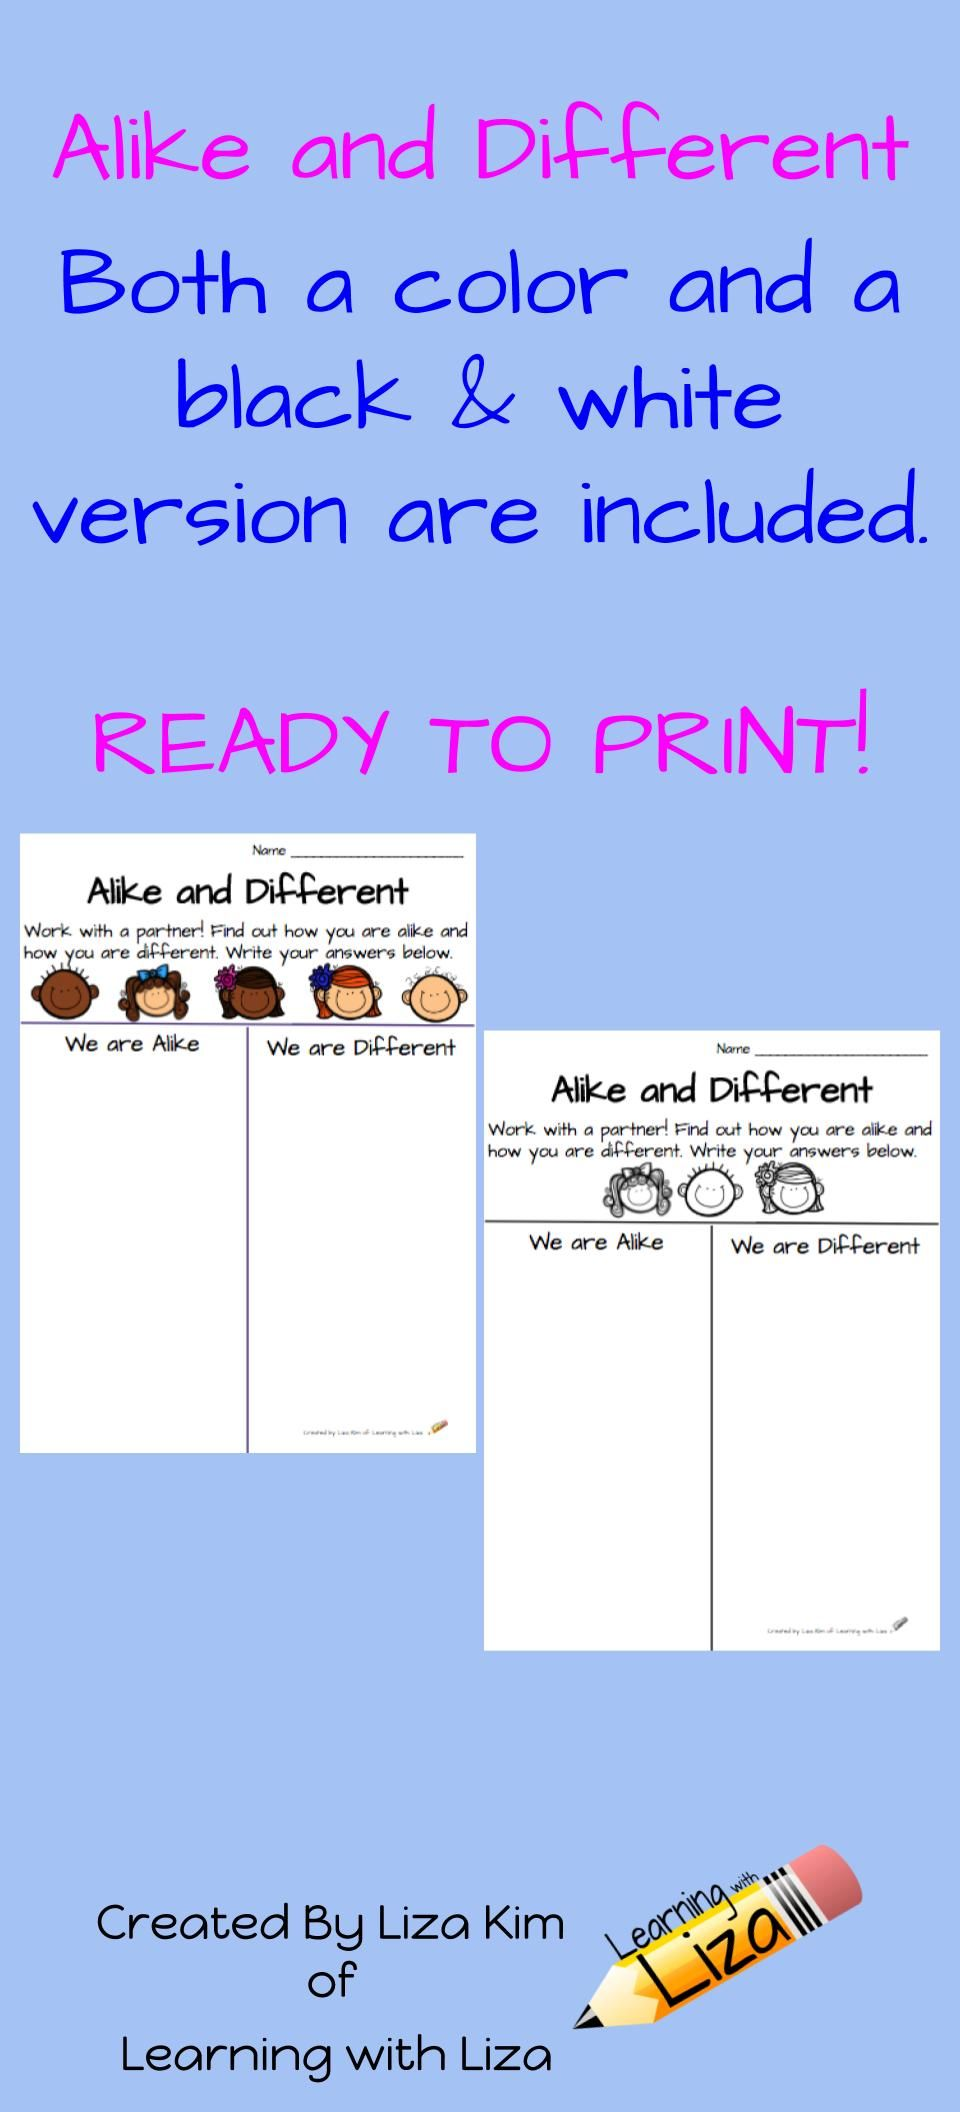 What A Fun Writing Activity For Your Students To Explore Alike And Different This Activity Is A Great Fun Writing Activities Kids Math Worksheets Cool Writing [ 2112 x 960 Pixel ]